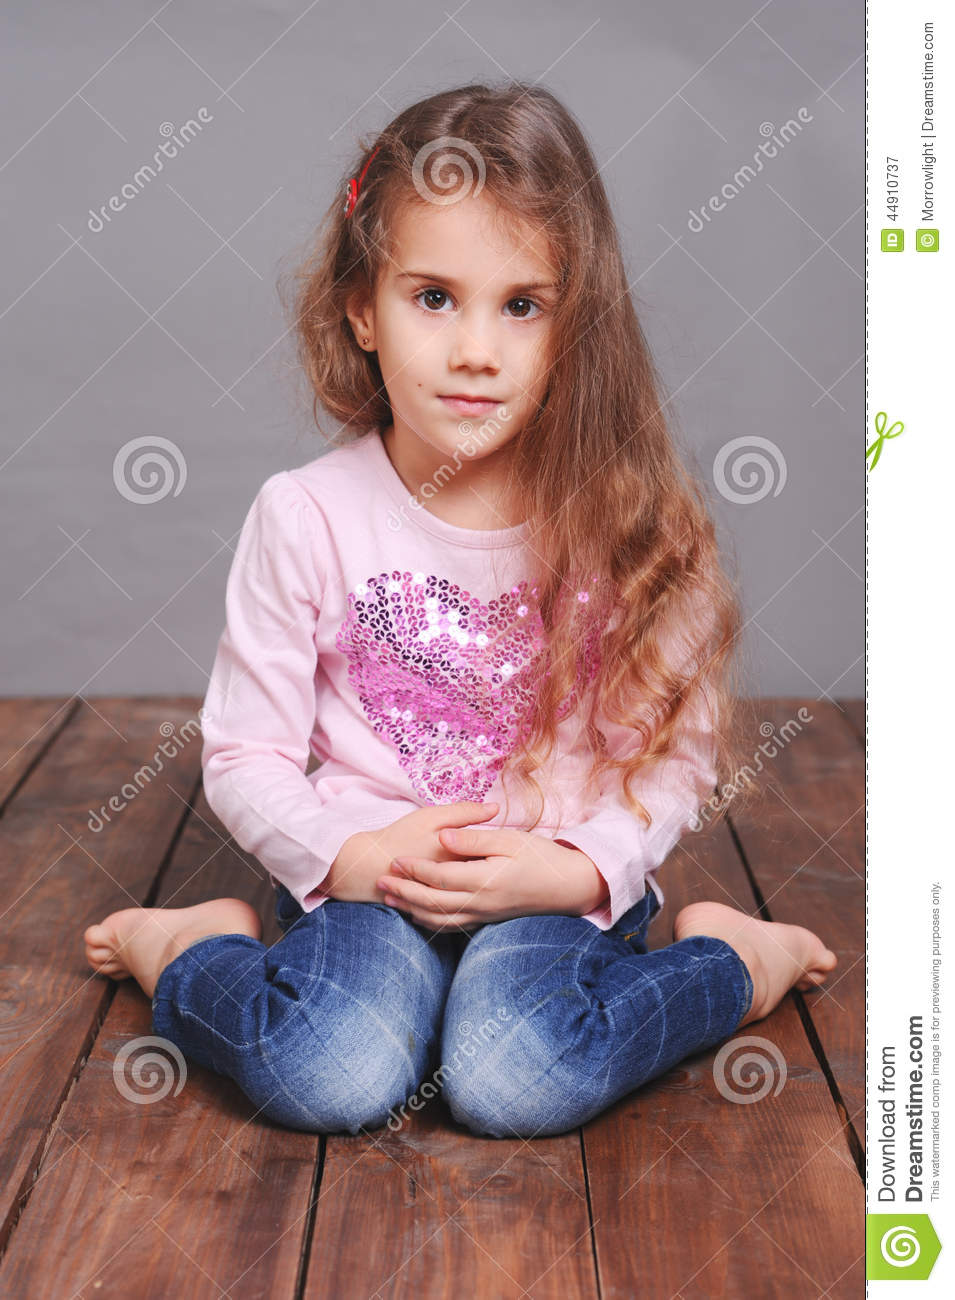 Cute Little Girl Sitting On Wooden Floor Stock Image